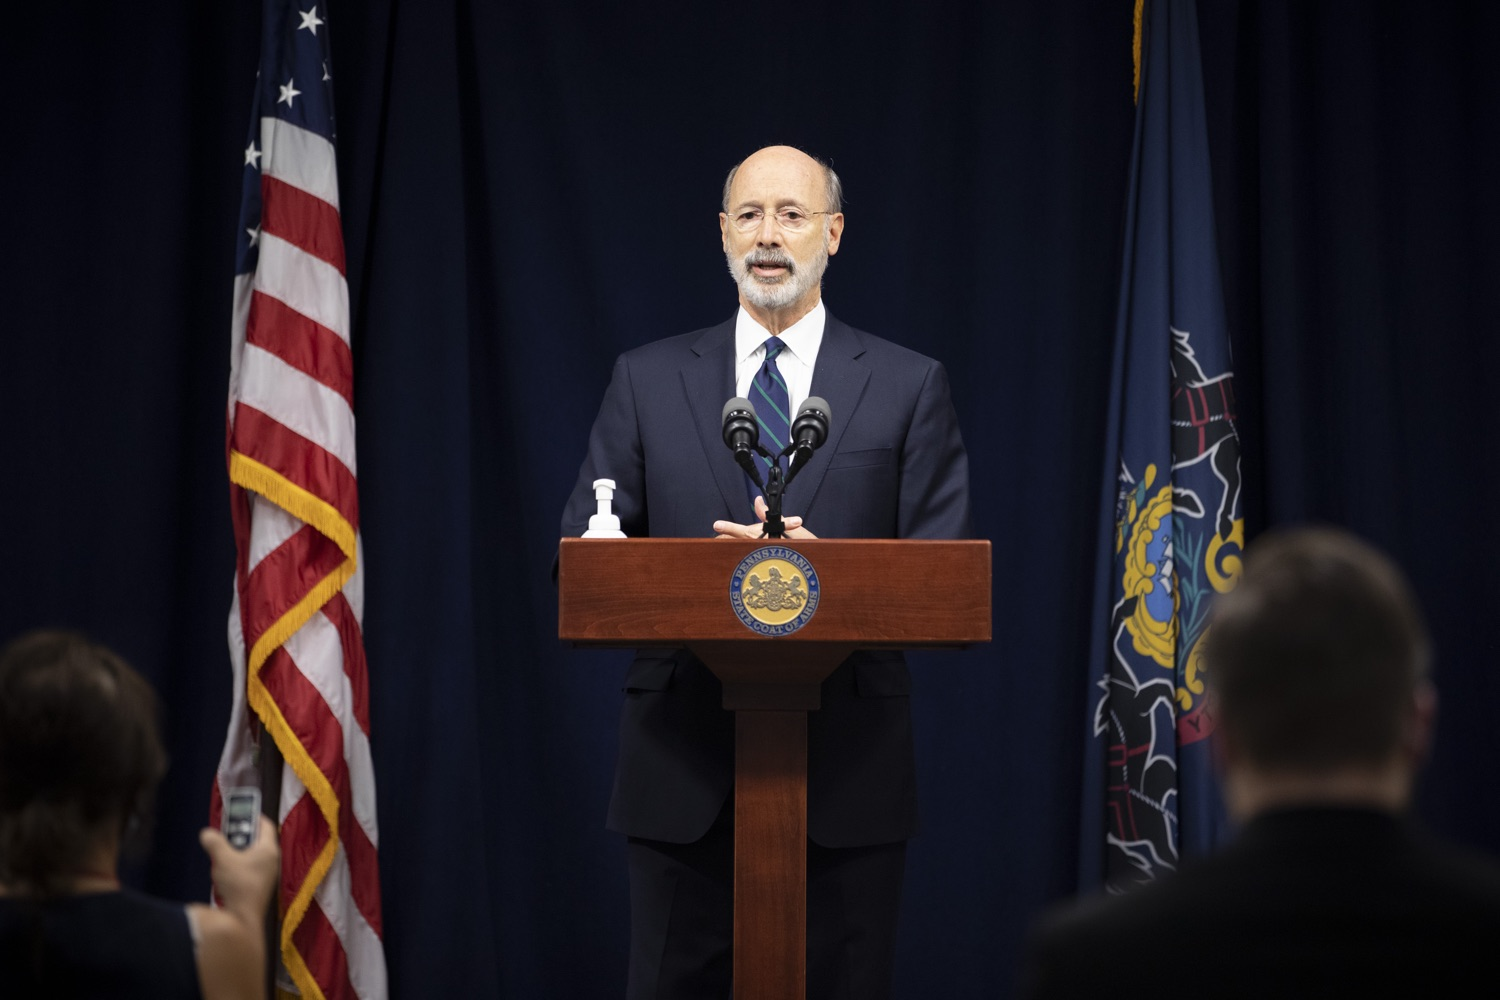 """<a href=""""https://filesource.wostreaming.net/commonwealthofpa/photo/18239_gov_recMarijuana_dz_023.jpg"""" target=""""_blank"""">⇣Download Photo<br></a>Pennsylvania Governor Tom Wolf speaking with the press. Governor Tom Wolf and Lt. Governor John Fetterman today called on the legislature to take up the legalization of adult-use cannabis to help with the states economic recovery amid COVID-19. Legalization will also create more outlets for important restorative justice programs in the commonwealth.  Harrisburg, PA  Sept. 3, 2020"""